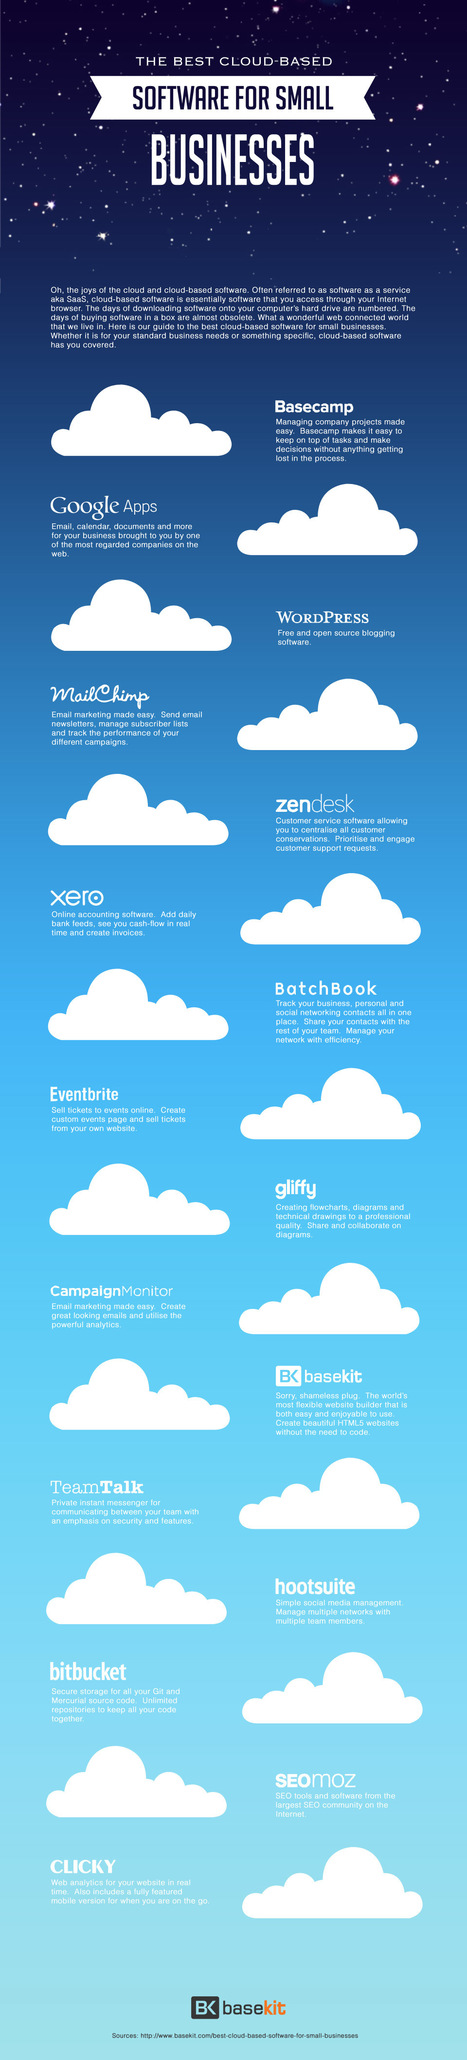 INFOGRAPHIC: The Best Cloud-Based Software For Small Businesses | Newsilike | Online Relations & Community management | Scoop.it